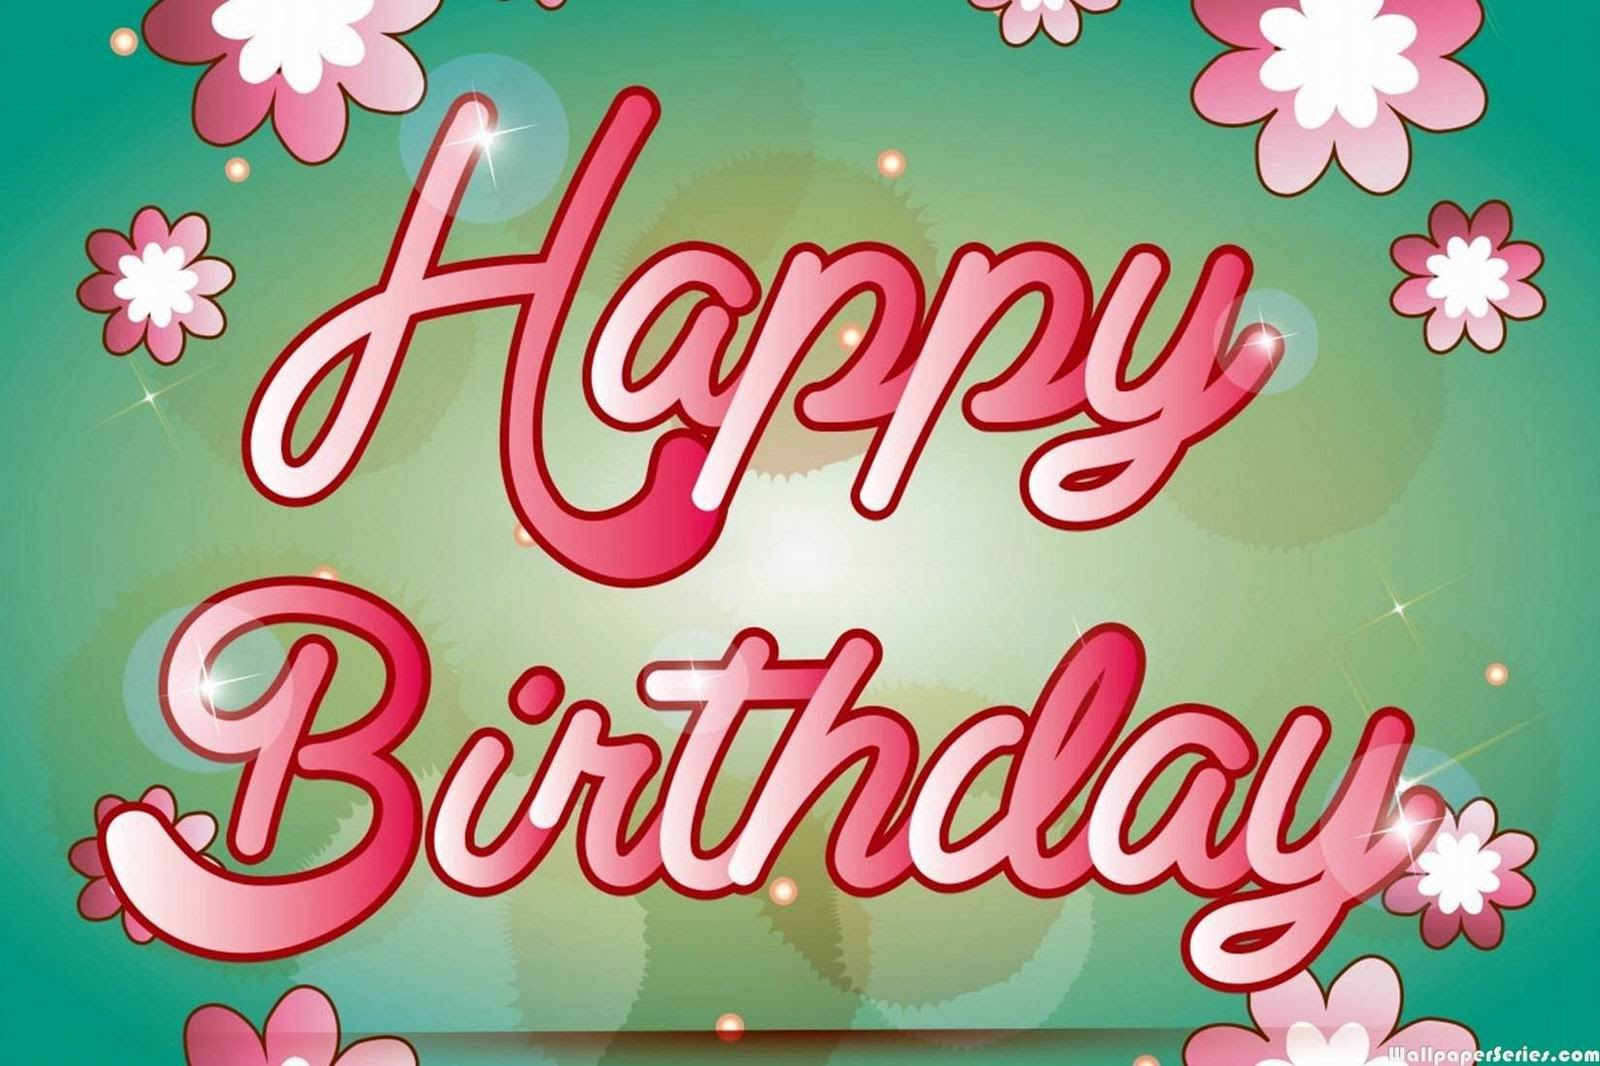 birthday wishes images hd free download ; maxresdefault